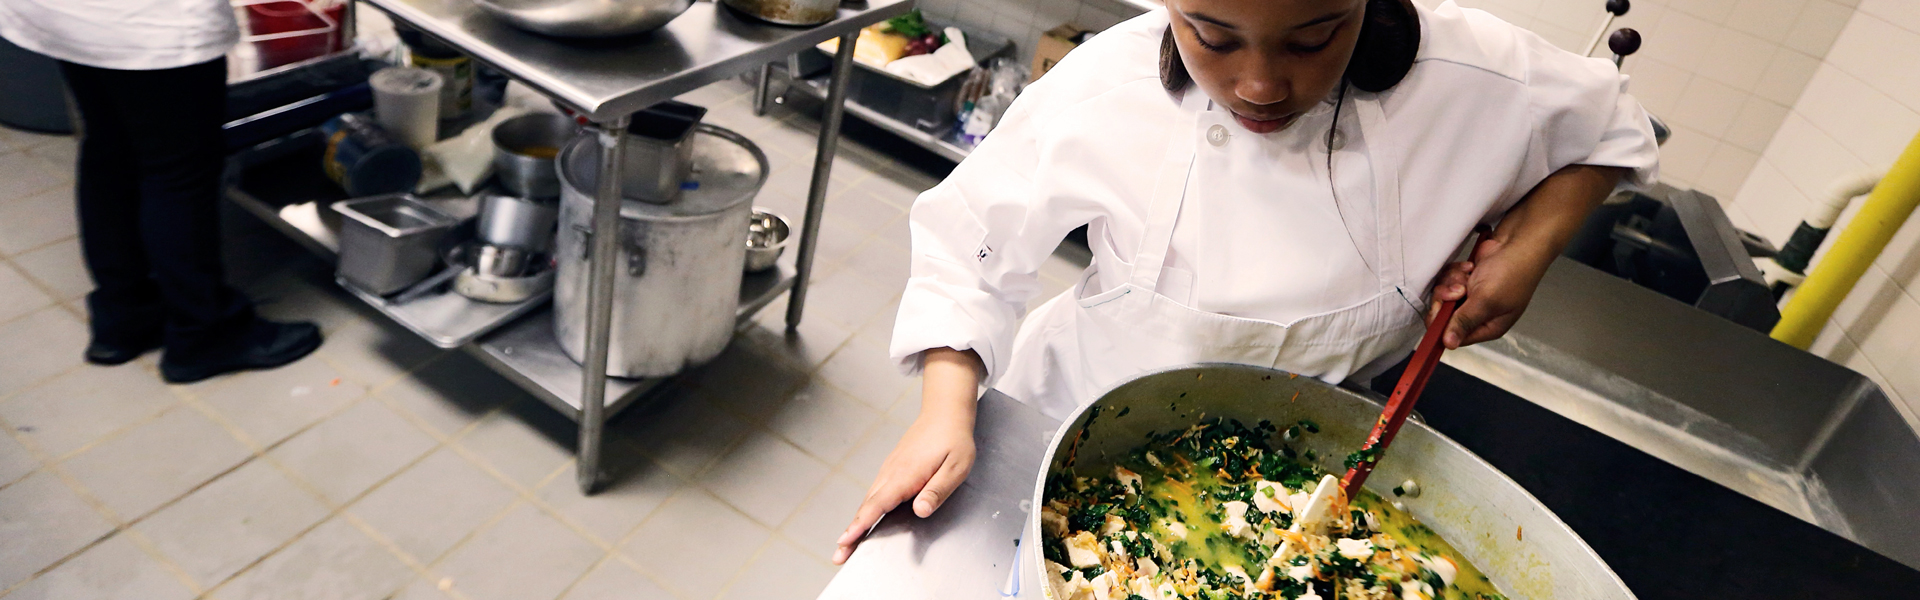 A girl in a chef's uniform and apron stirs a pot of vegetables and tofu in an industrial kitchen.